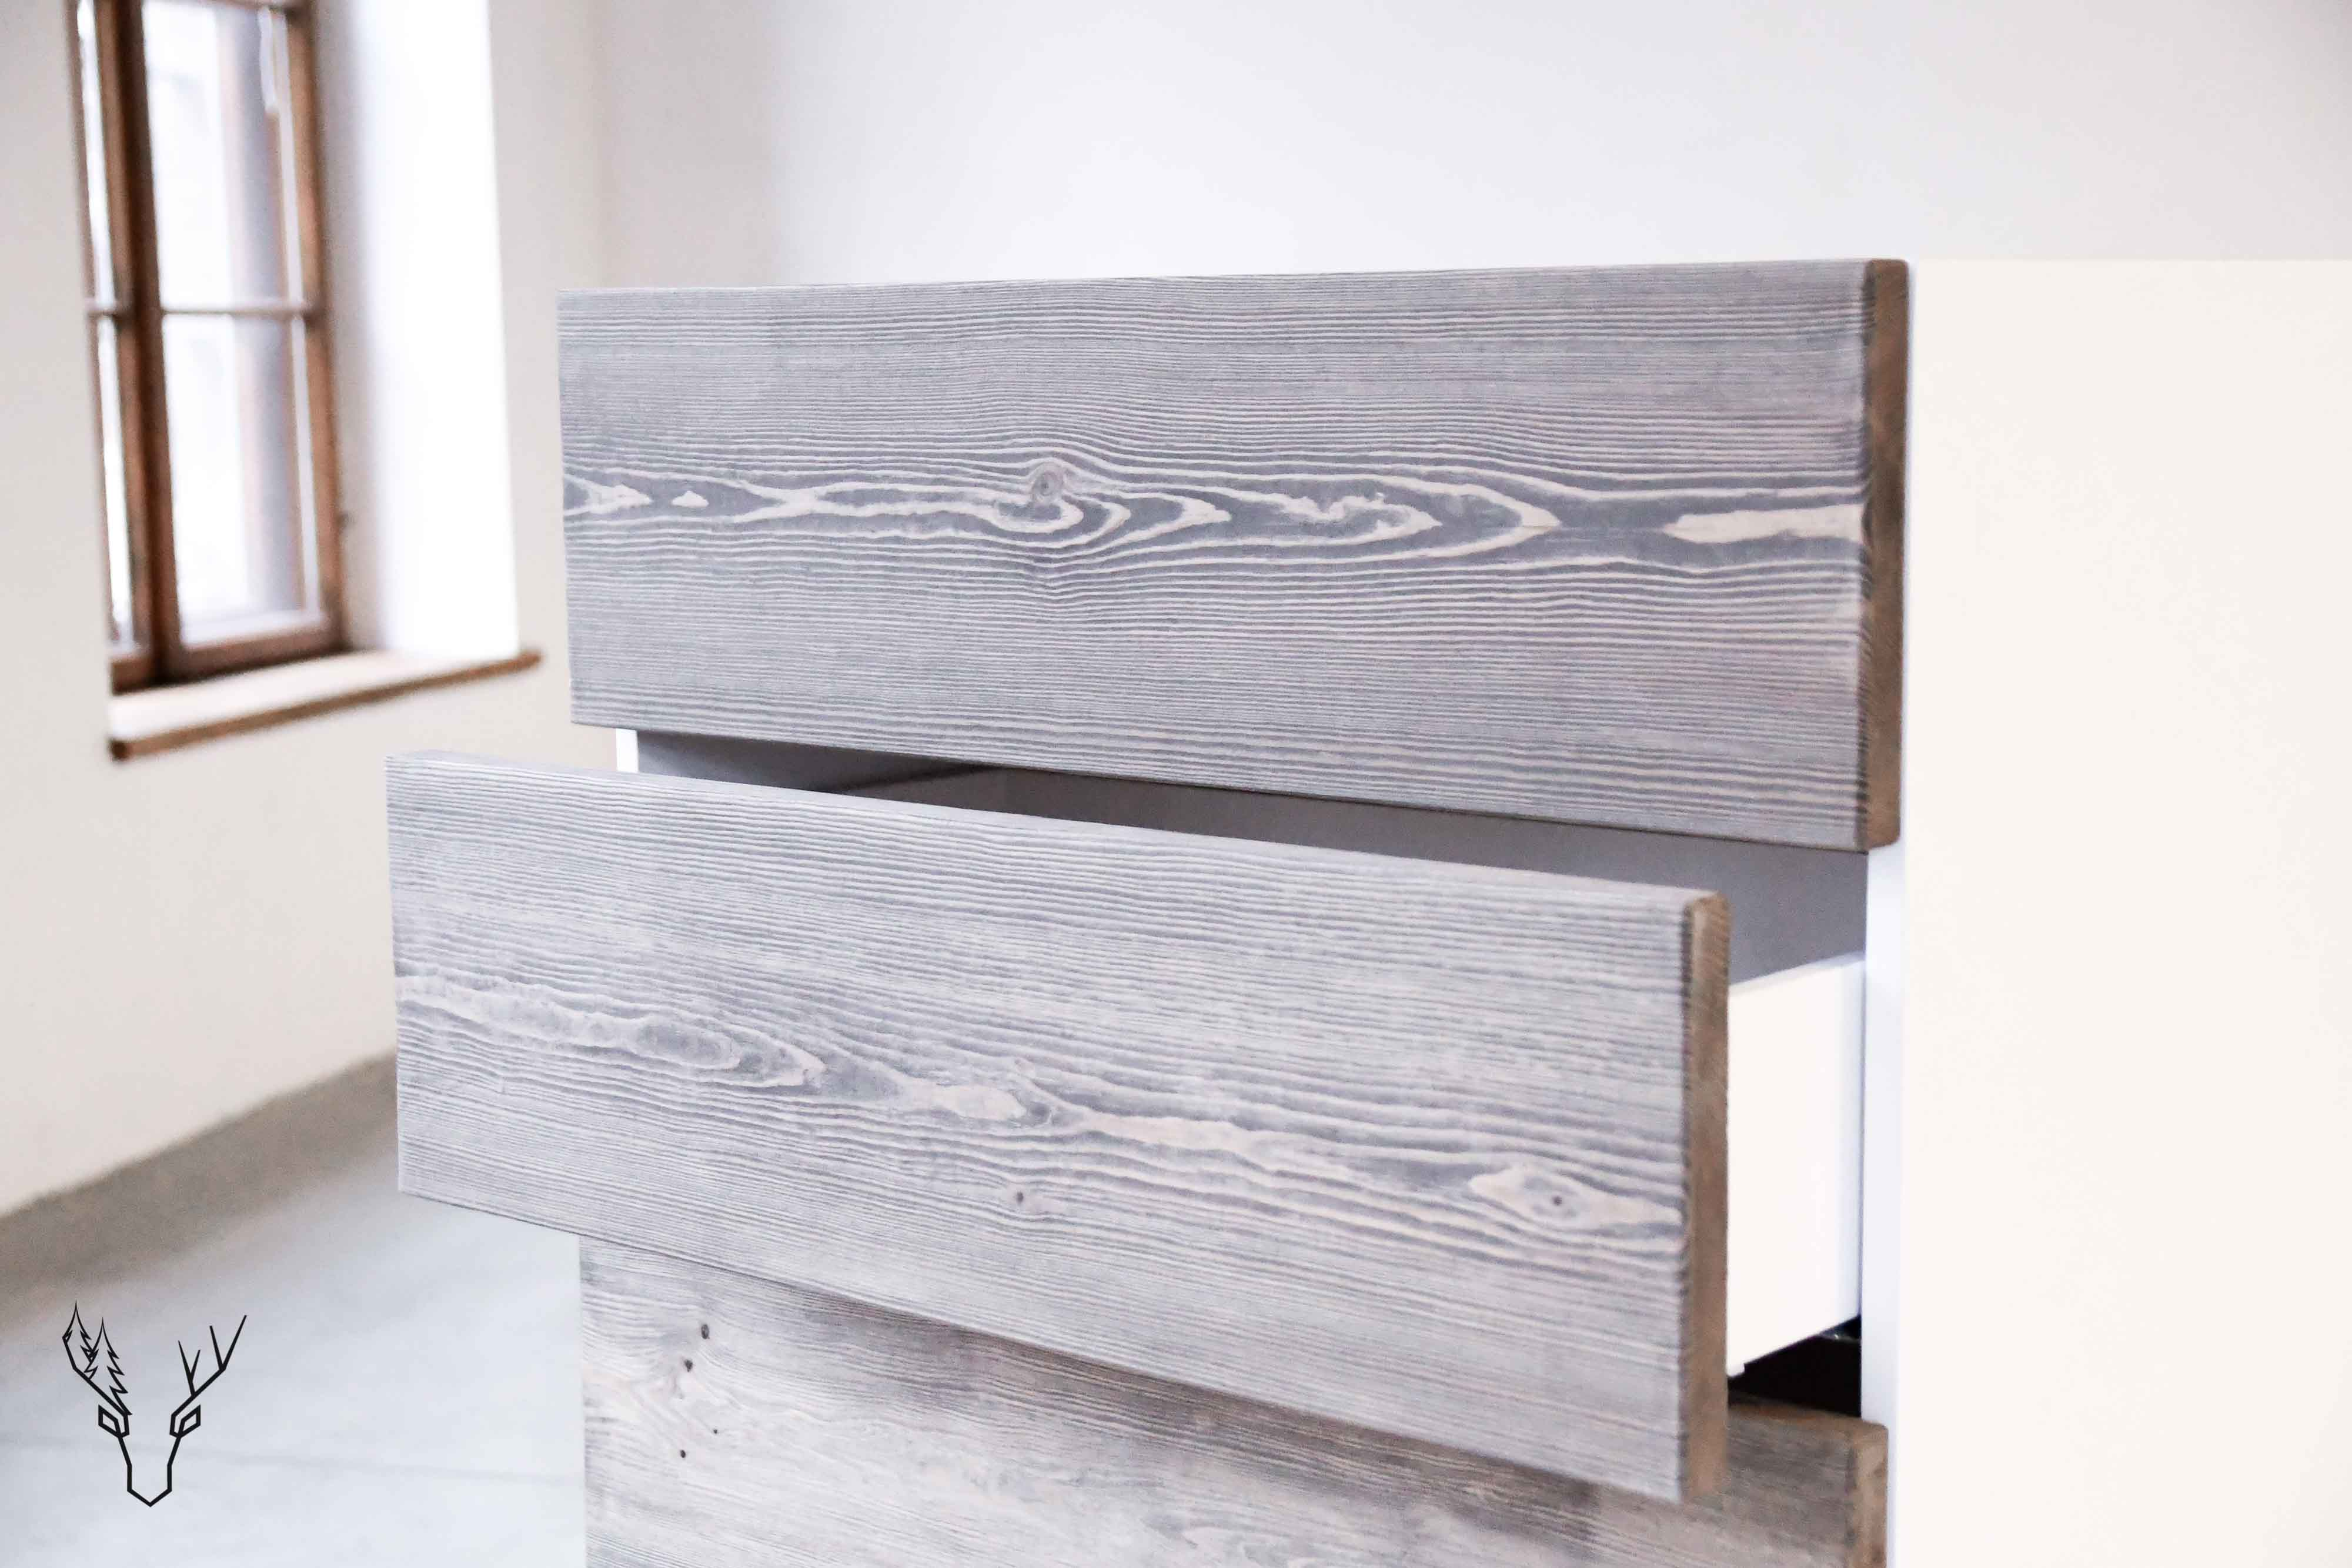 Sideboard 5 № Two - Wild Wood Factory